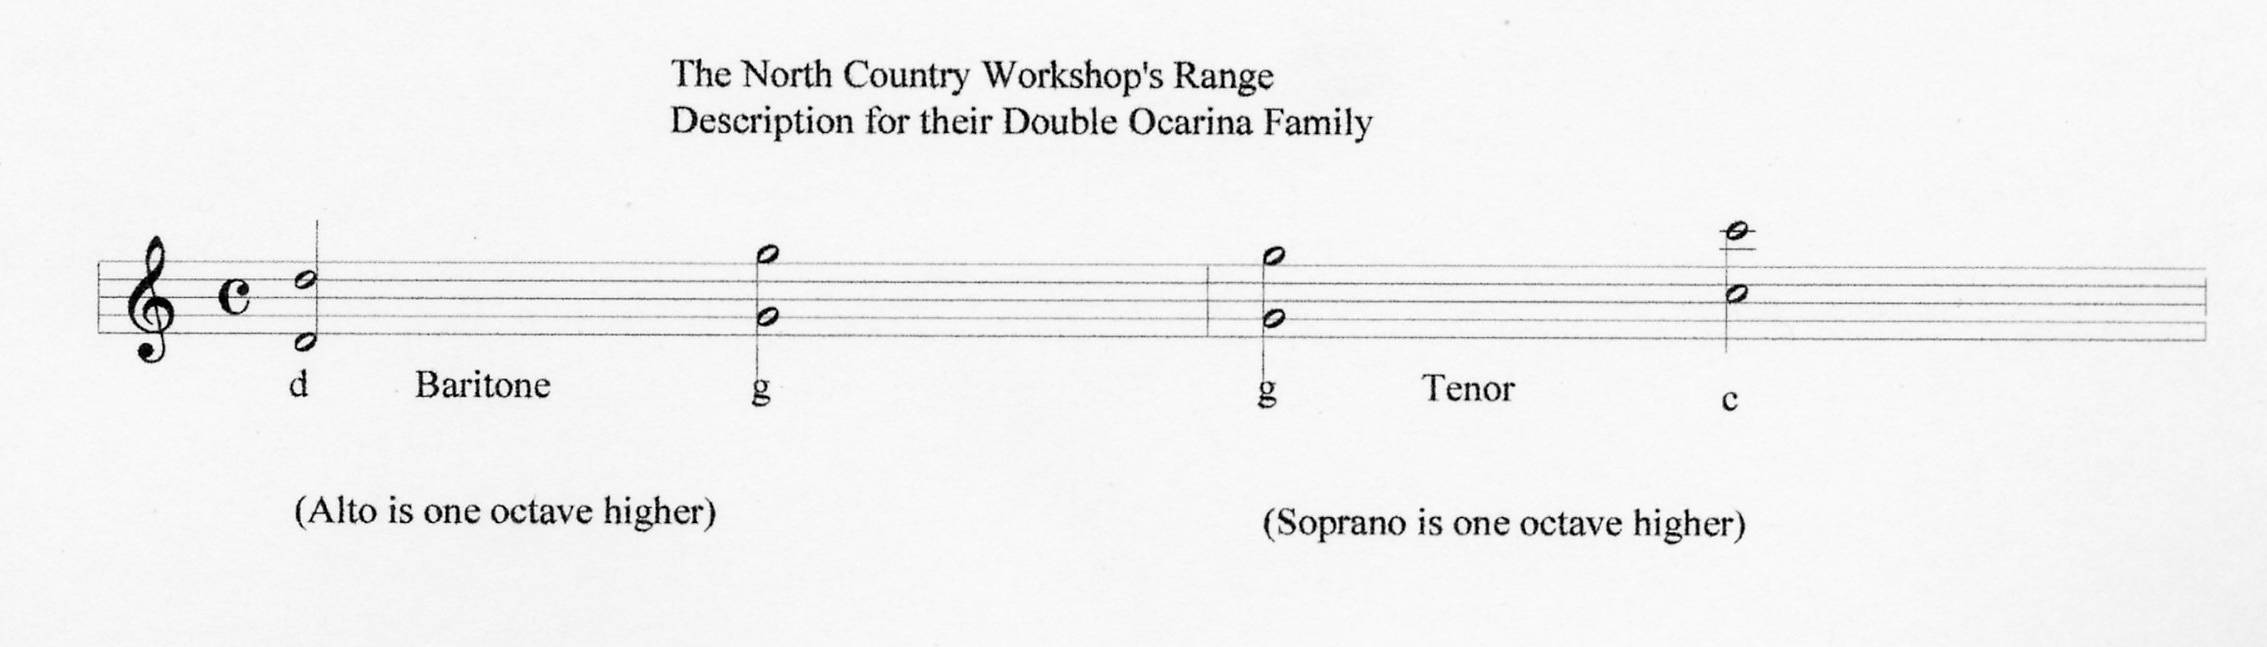 Range of Tones for The North Country Workshop's Family of Ocarinas.